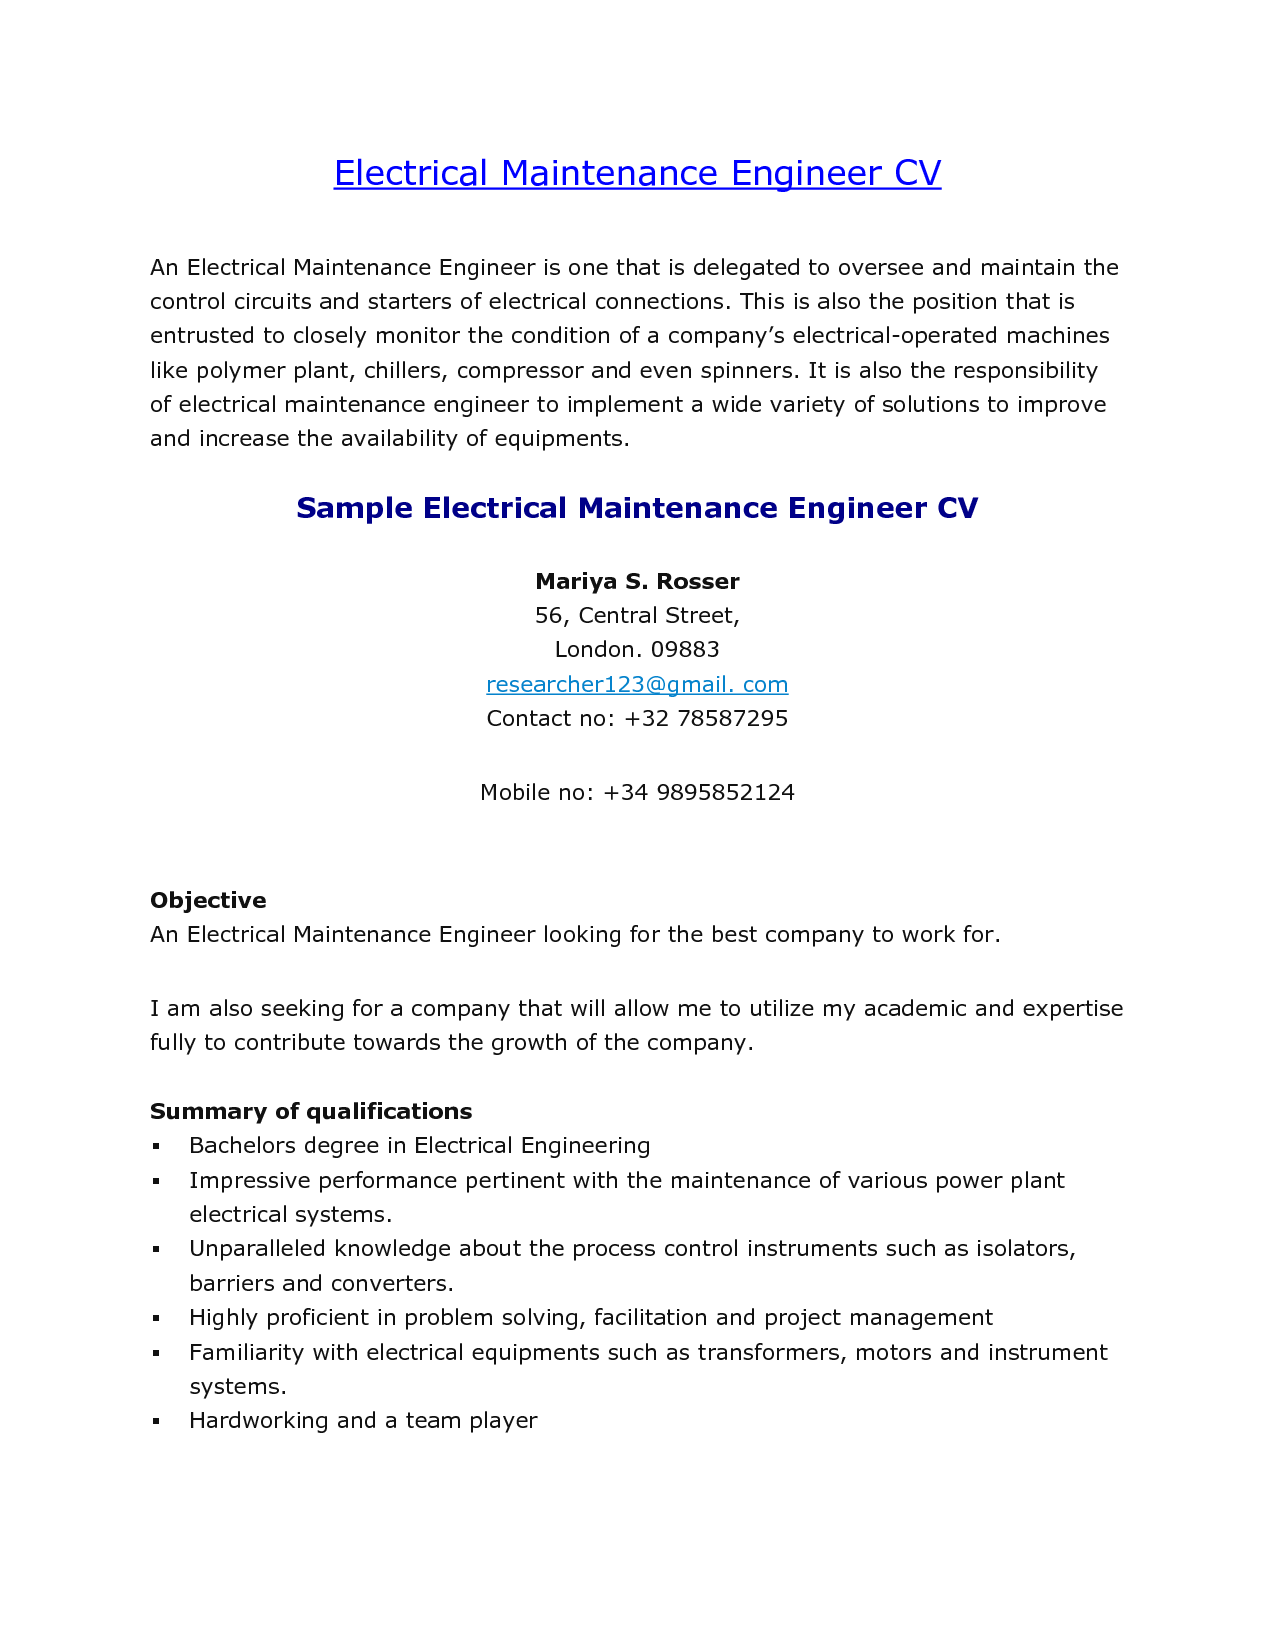 sample resume of electrical maintenance engineer old version old version old version sample resume engineering curriculum - Sample Maintenance Resume